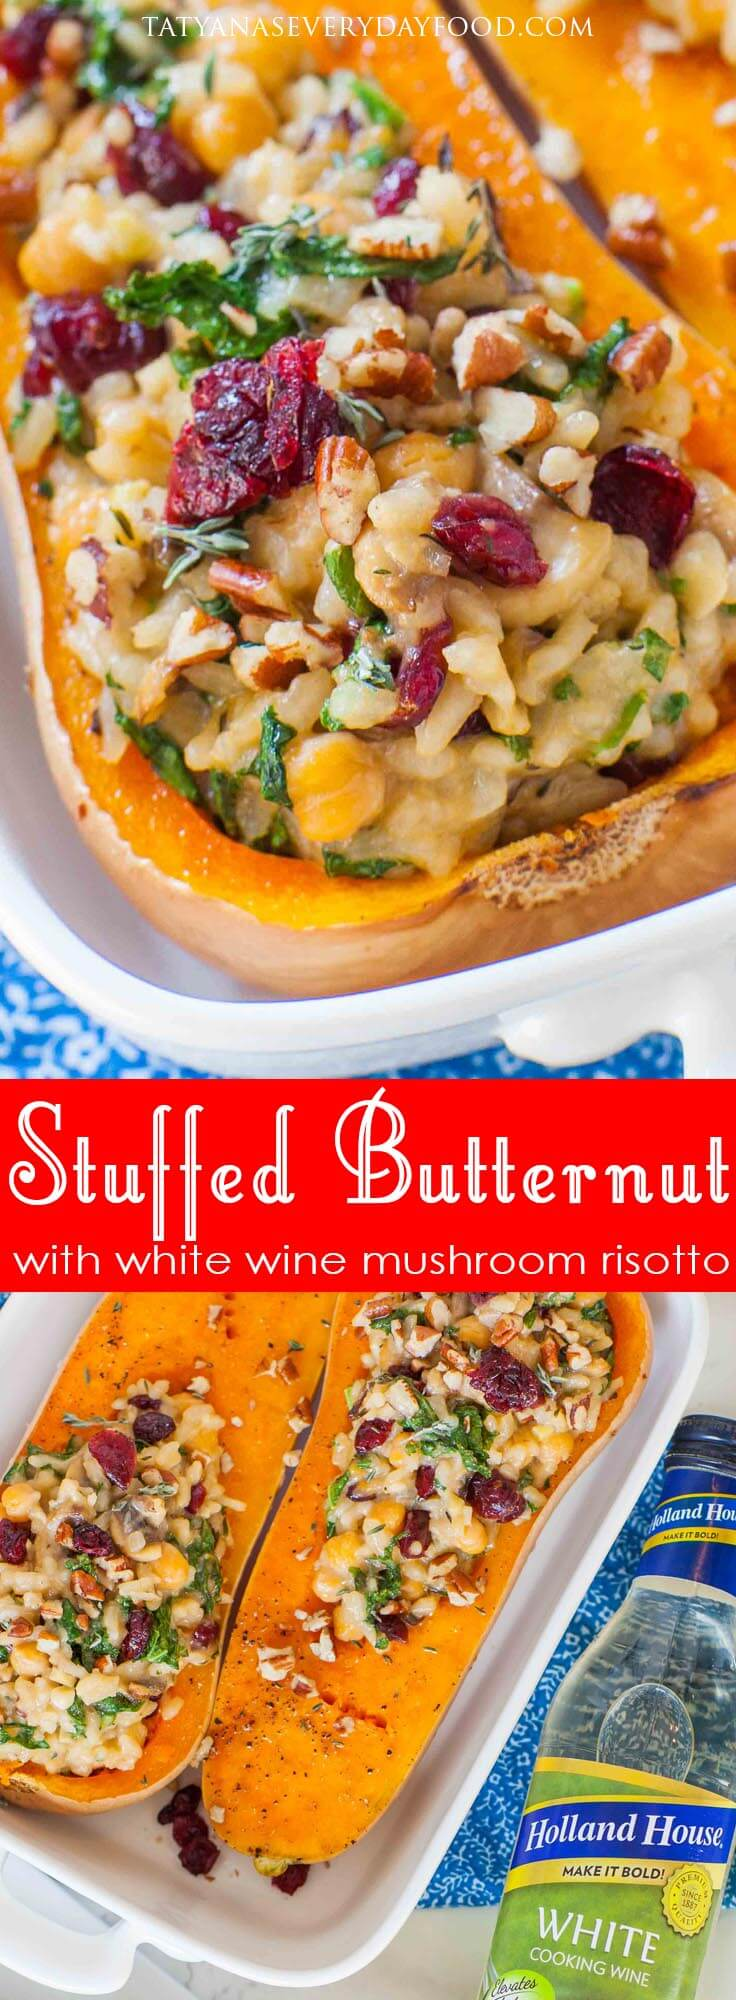 Stuffed Butternut Squash with Holland House white cooking wine mushroom risotto